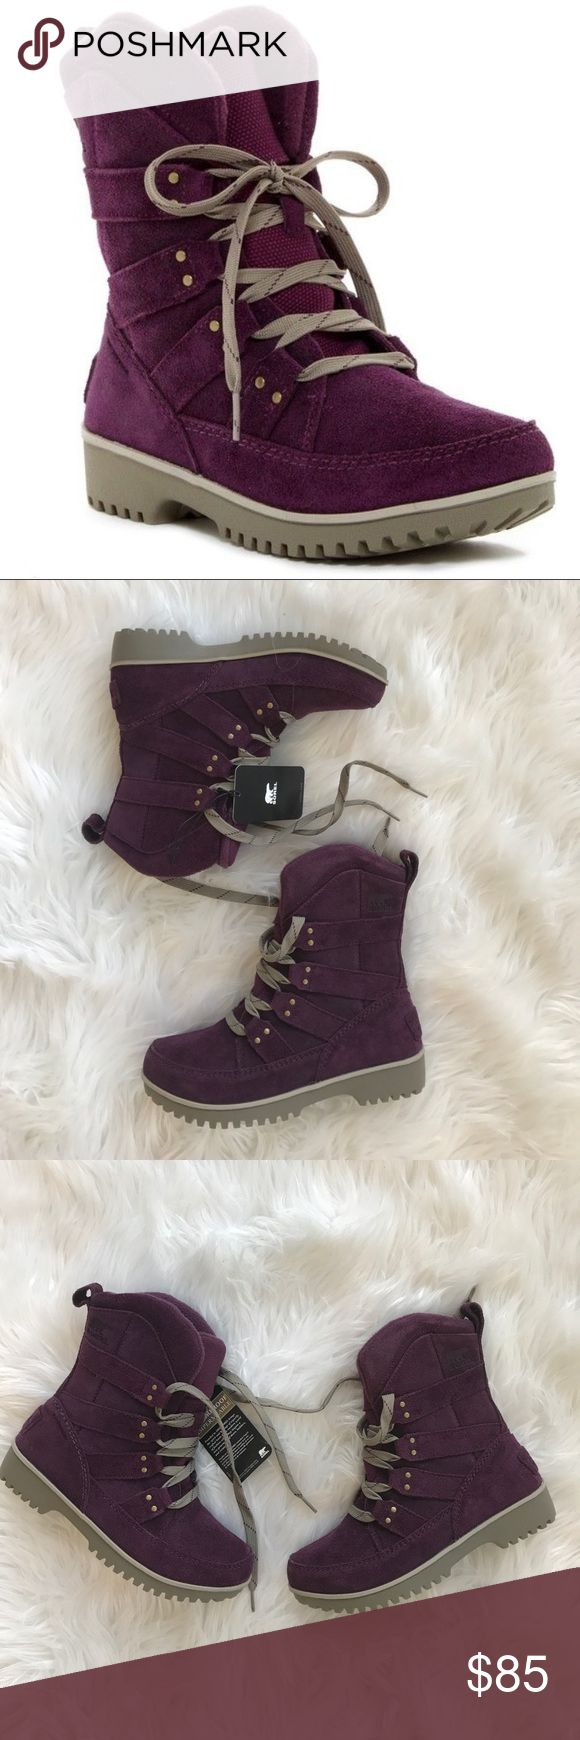 • Sorel • Meadow Lace Up Winter Boots Purple 6 - Sorel - Meadow Lace Up - Brand New with Tags - Size 6 - Purple Sorel Shoes Winter & Rain Boots